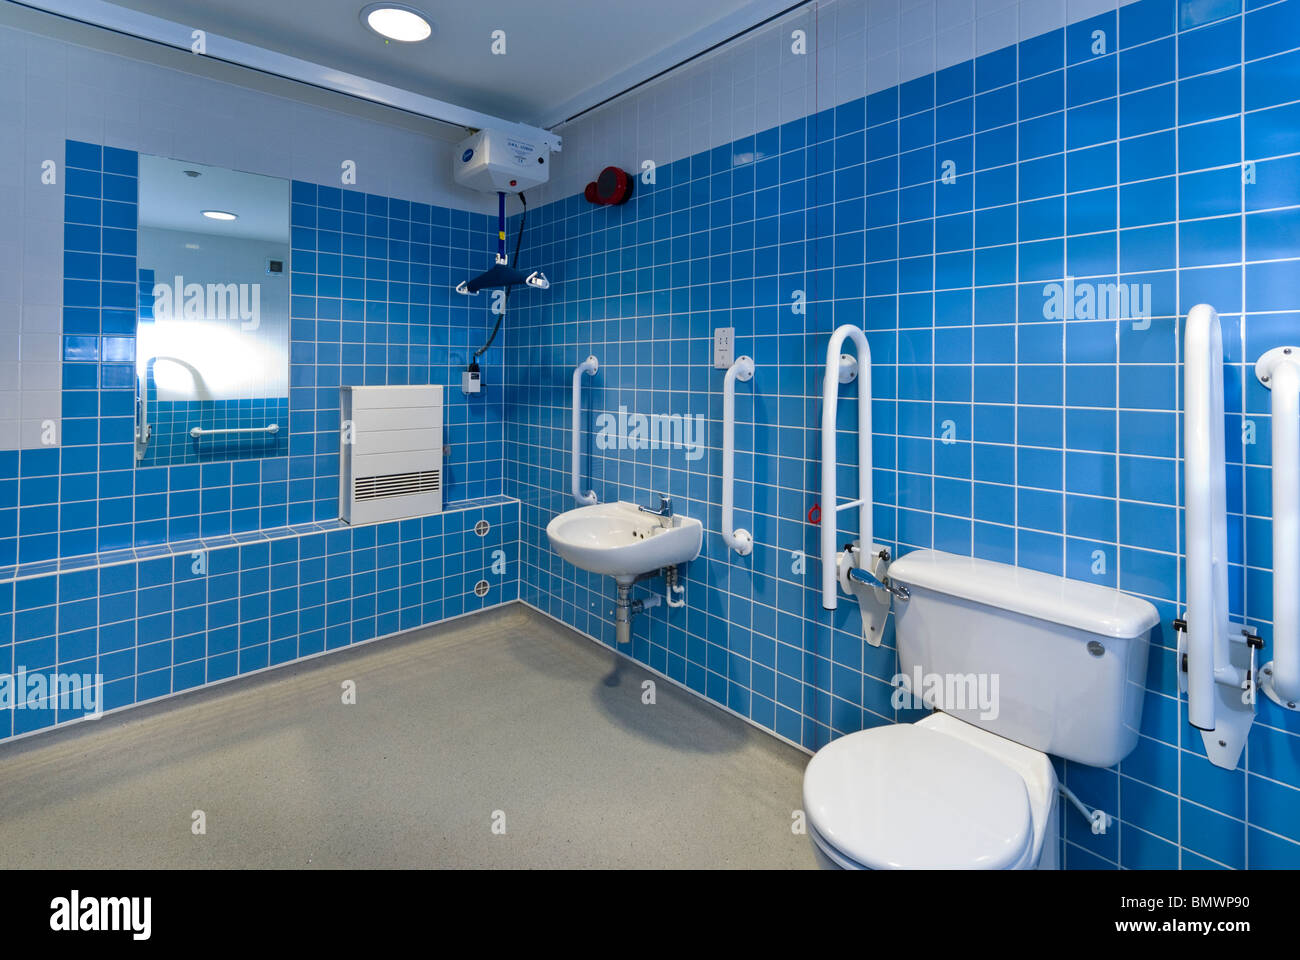 Disabled and infirm bathroom in a nursing / care home - Stock Image